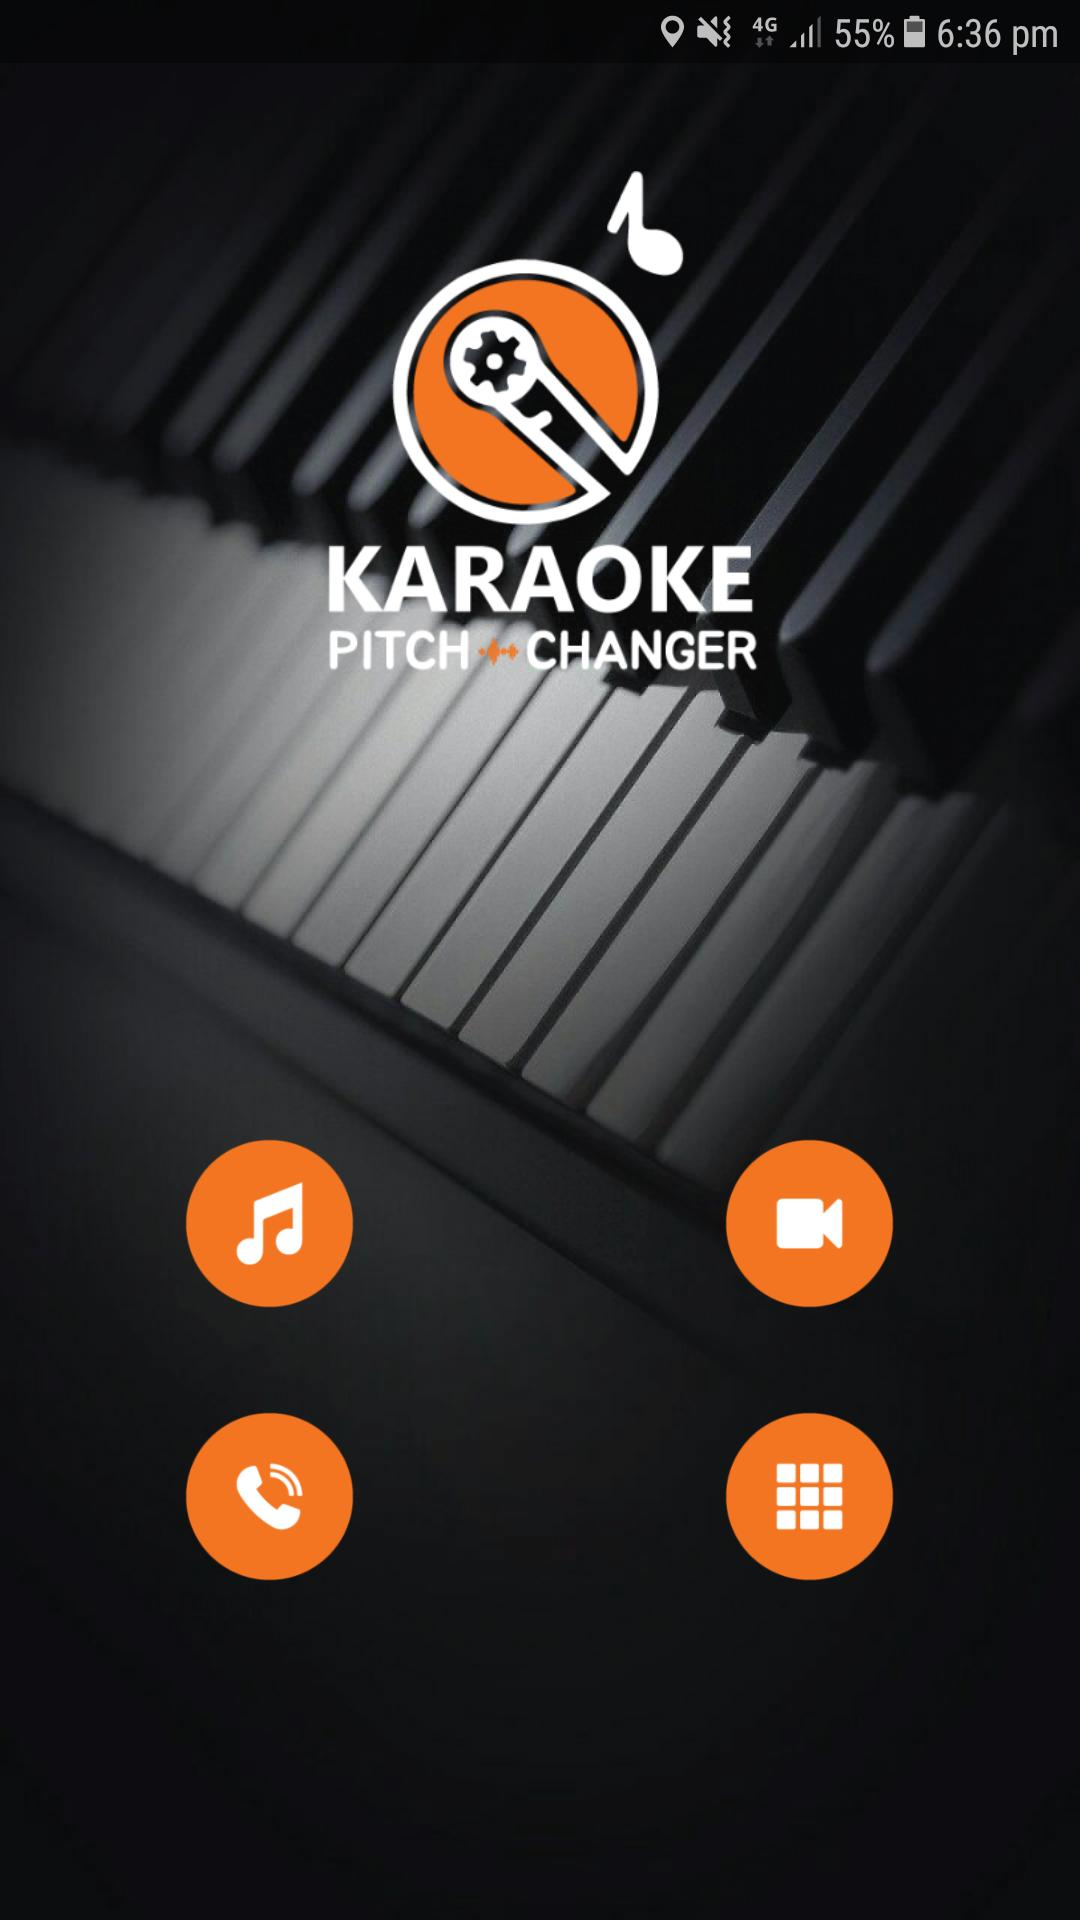 Karaoke Pitch Changer for Android - APK Download